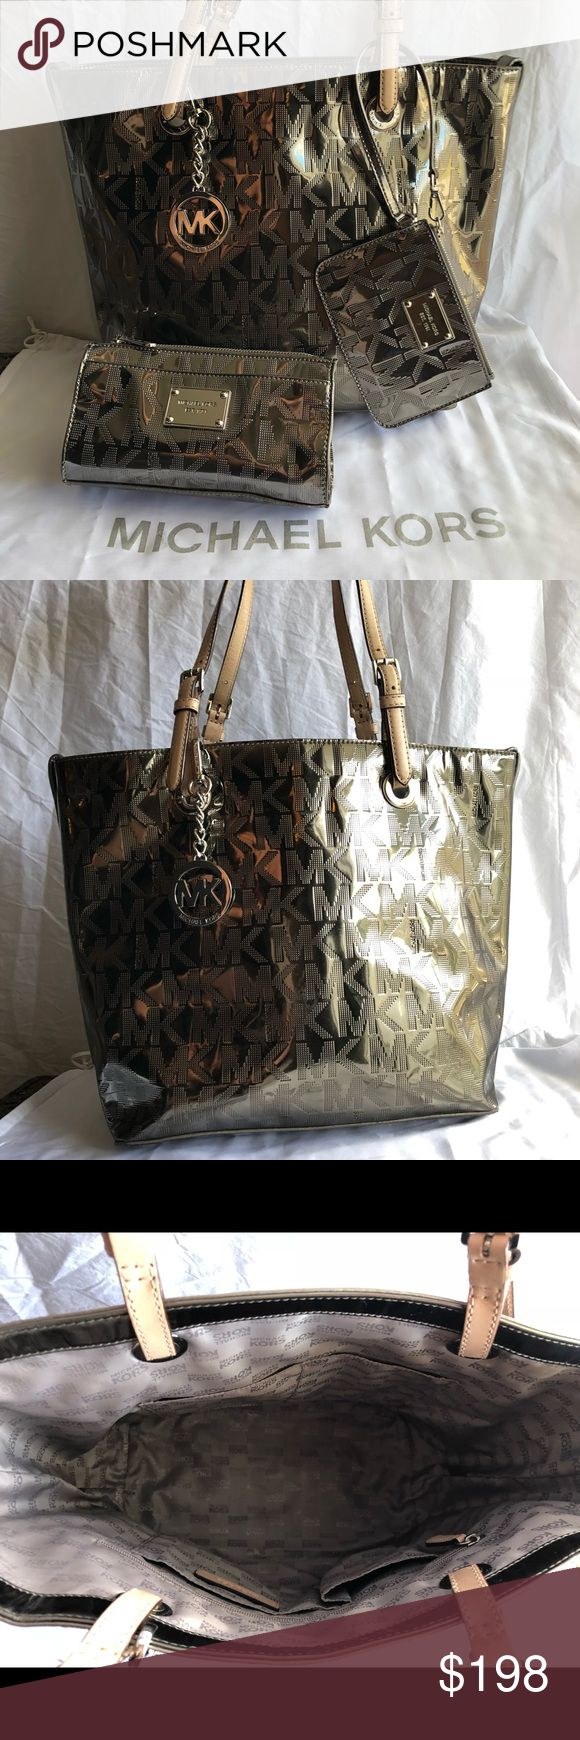 Michael Kors Metallic Purse, Wristlet & Bag:) Authentic Michael Kors Metallic Mirrored Nickel Tote/Purse New Wristlet & Cosmetic (anything Bag) Bag  EXCELLENT CONDITION:) AWESOME SET!  If you if you have any questions, message me anytime:)  Thank You for Looking! Michael Kors Bags